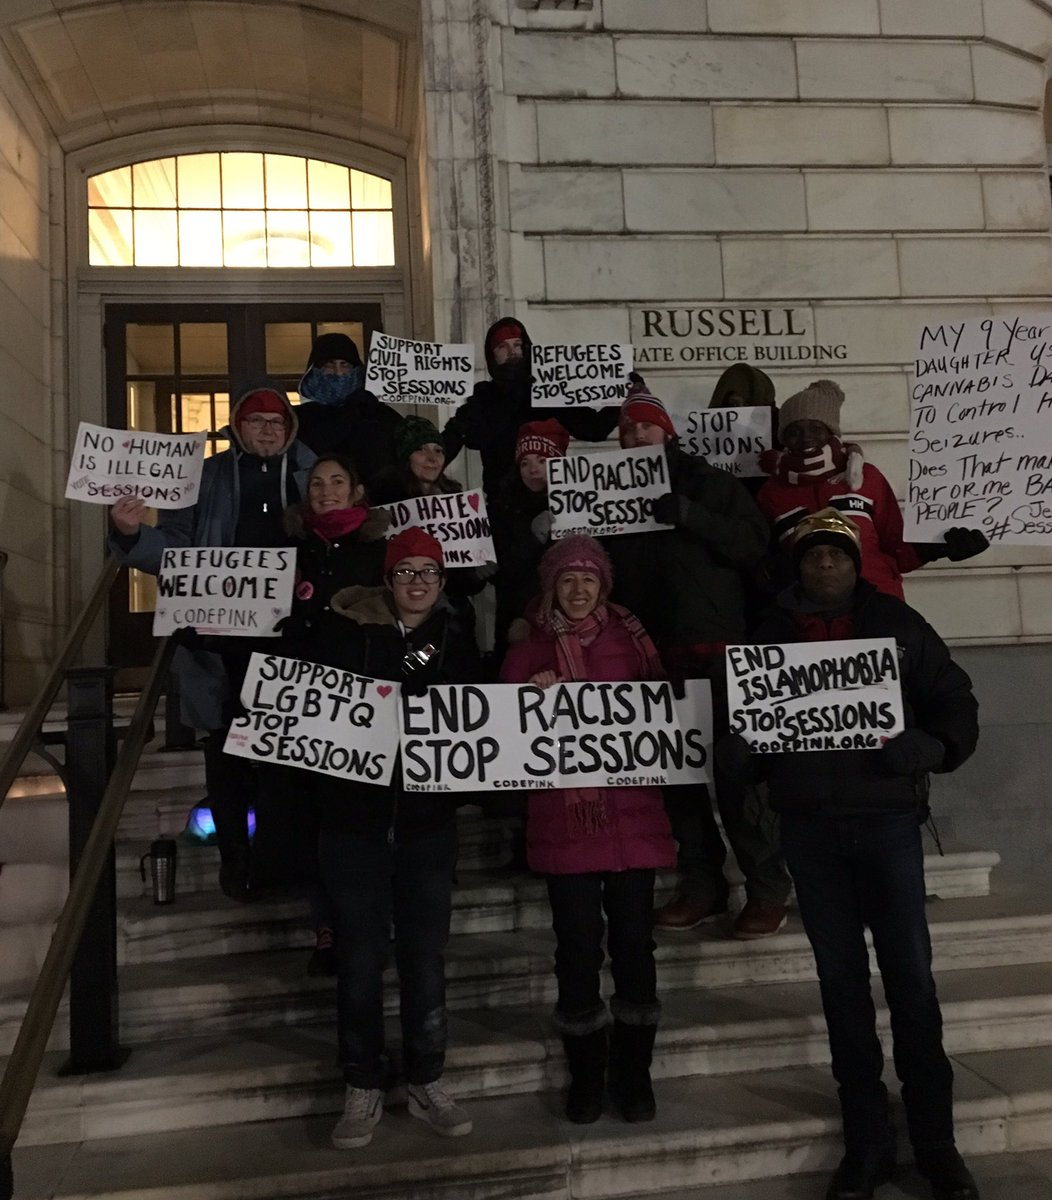 CODEPINK is out this morning waiting to go into Sessions confirmation hearing. End racism #StopSessions https://t.co/ieSAuXzSSA